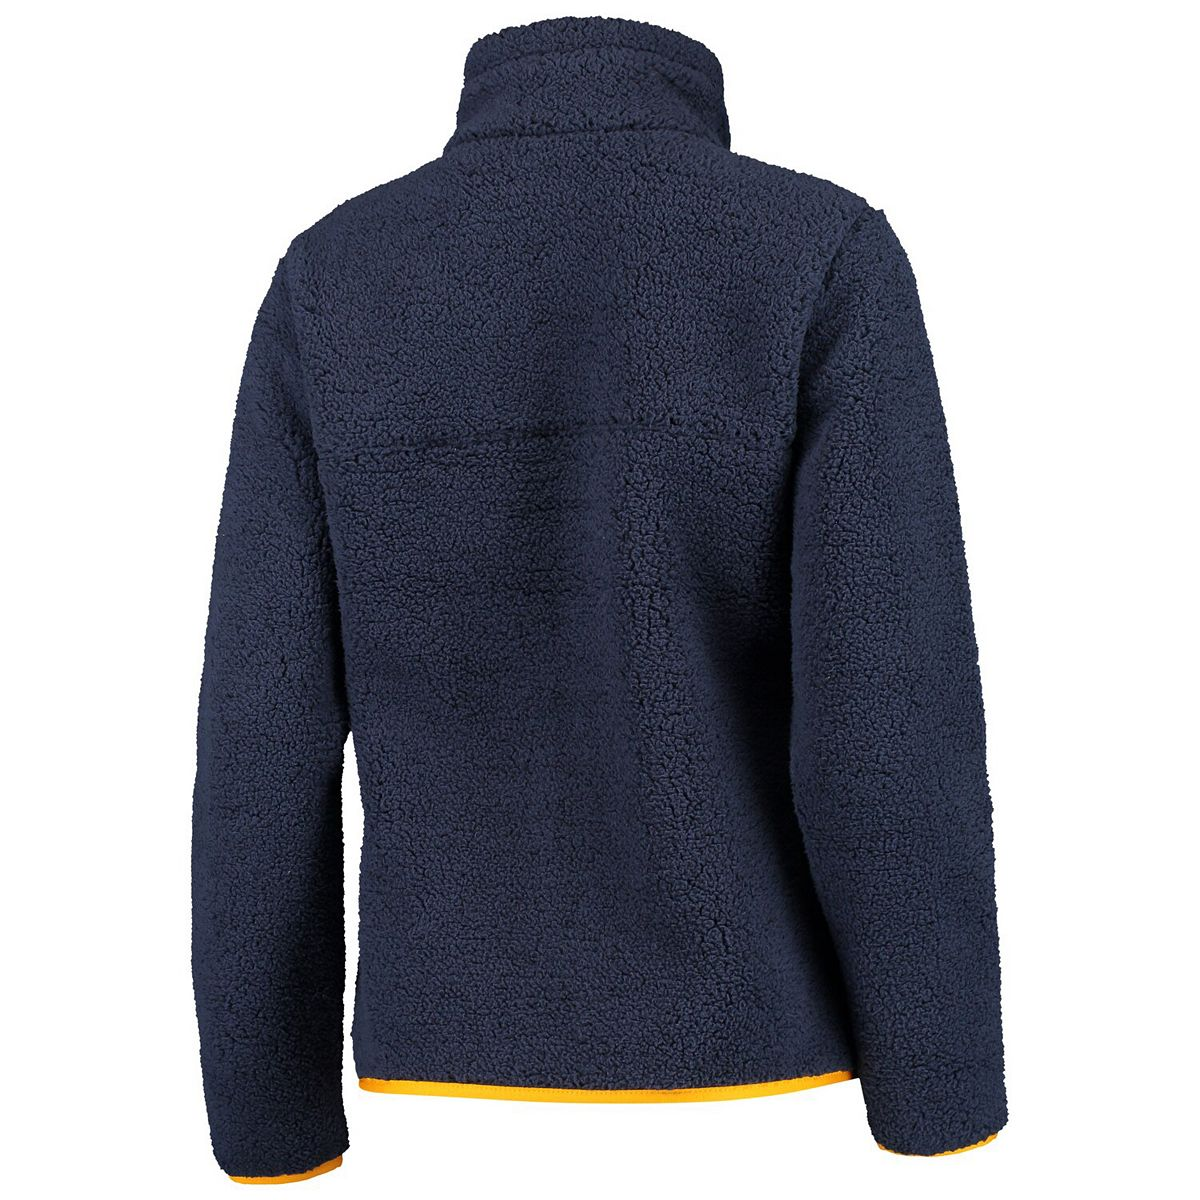 Women's Columbia Navy West Virginia Mountaineers Mountain Side Sherpa Fleece Full-Zip Jacket Cy5am